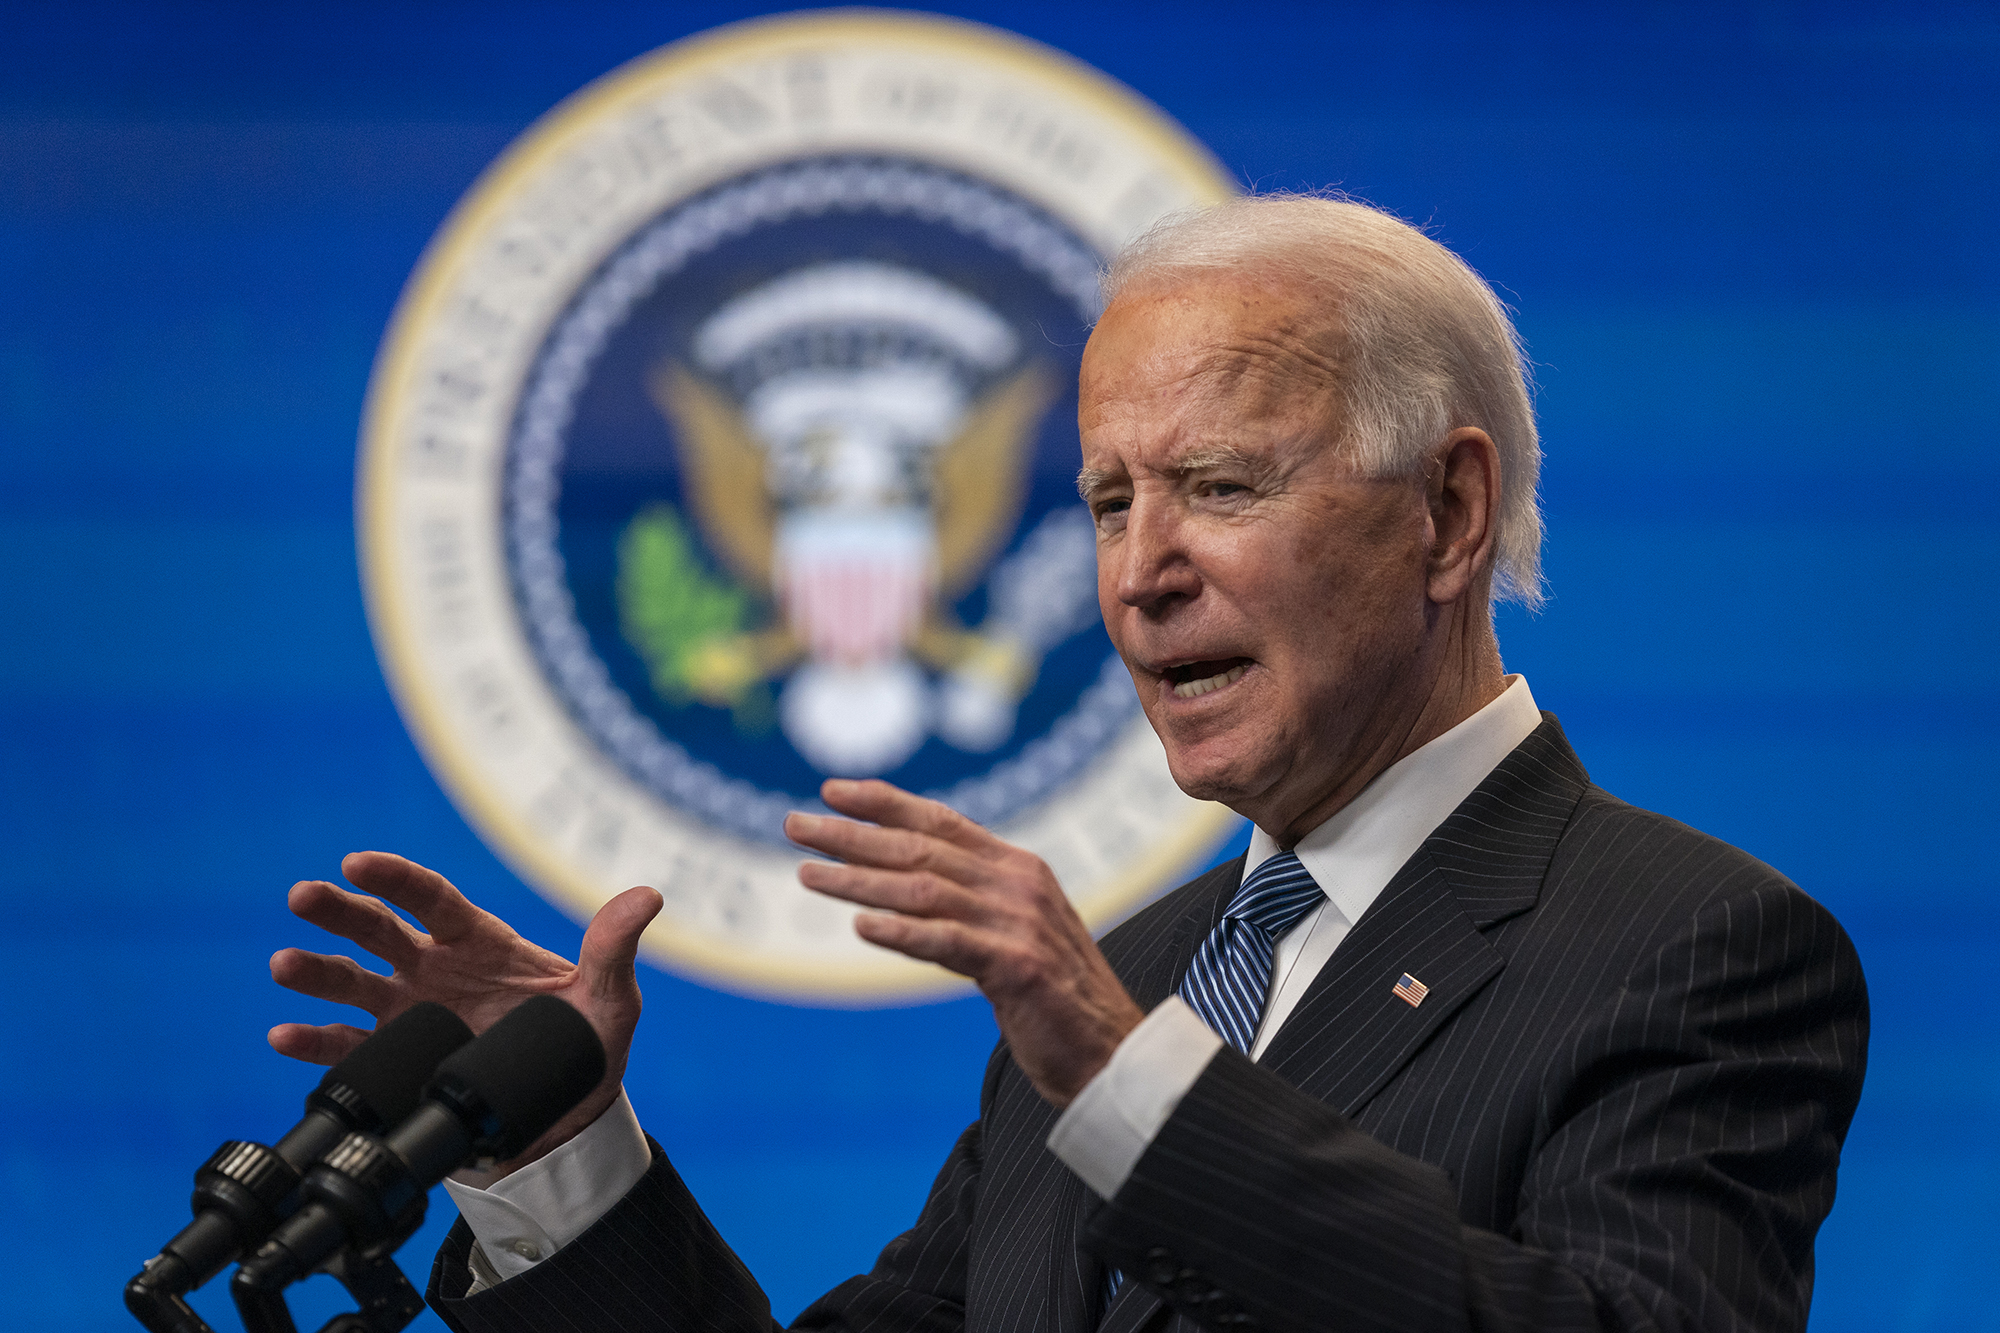 President Joe Biden speaks during an event on American manufacturing, in the South Court Auditorium on the White House complex on Monday, January 25, in Washington.